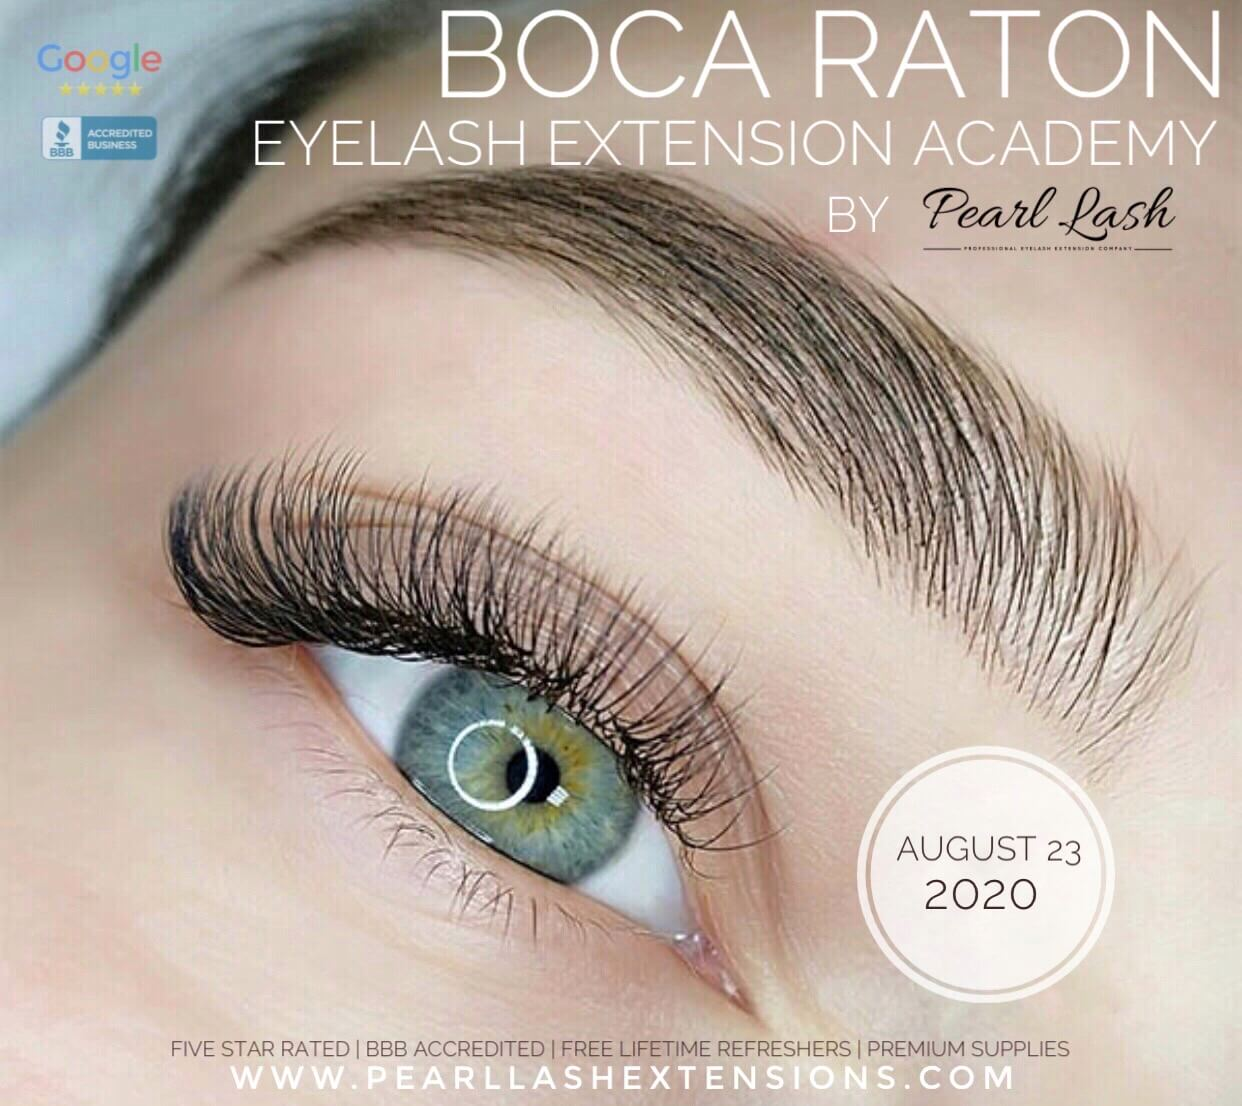 Eyelash Extension Classic Training by Pearl Lash Boca Raton